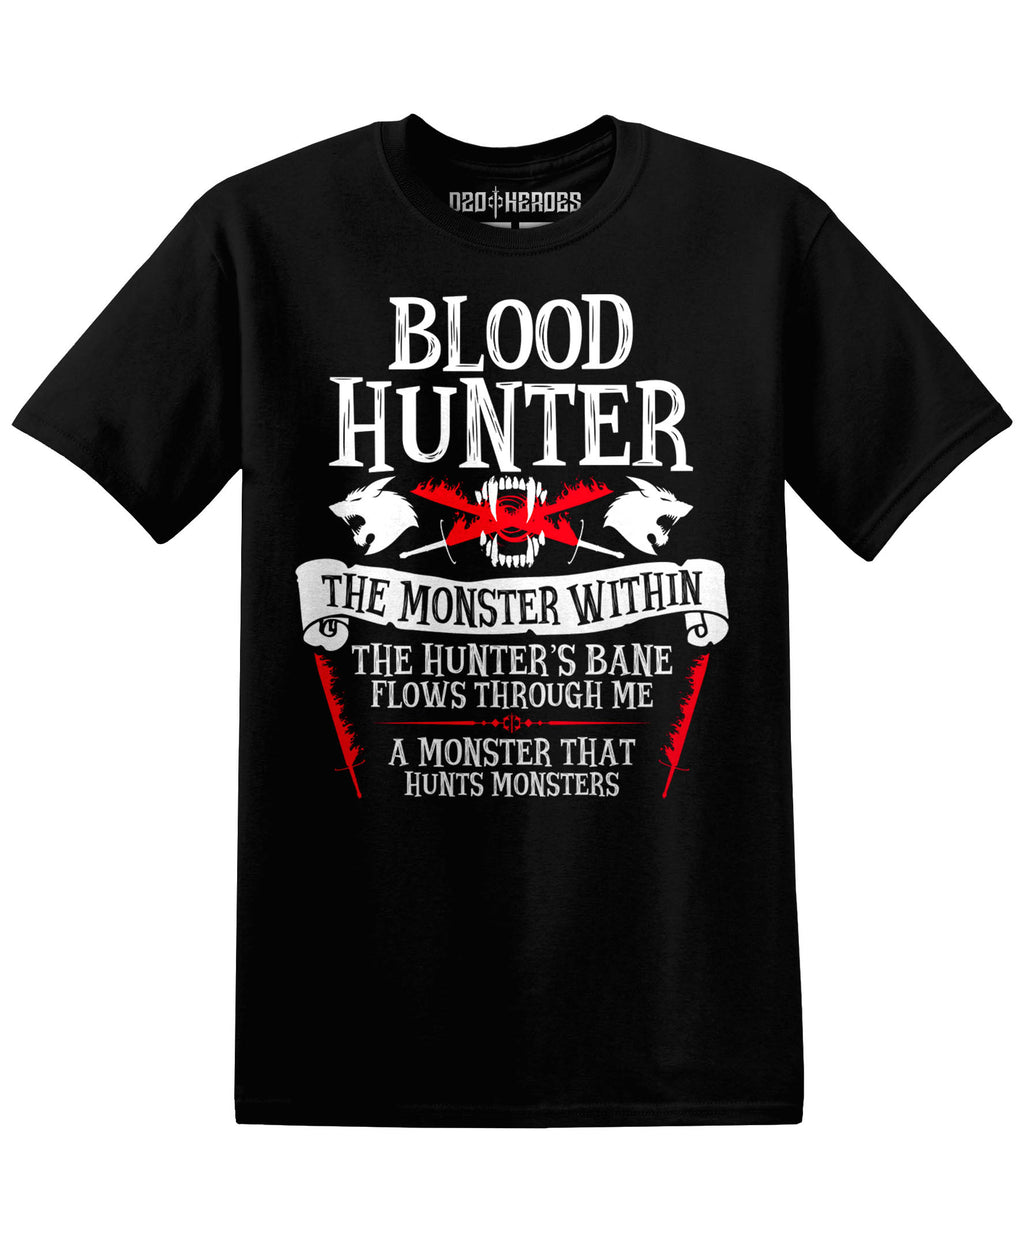 Blood Hunter : The Monster Within - T-Shirt - D20 Heroes / Dungeons and Dragons and Fantasy Clothing and Merchandise